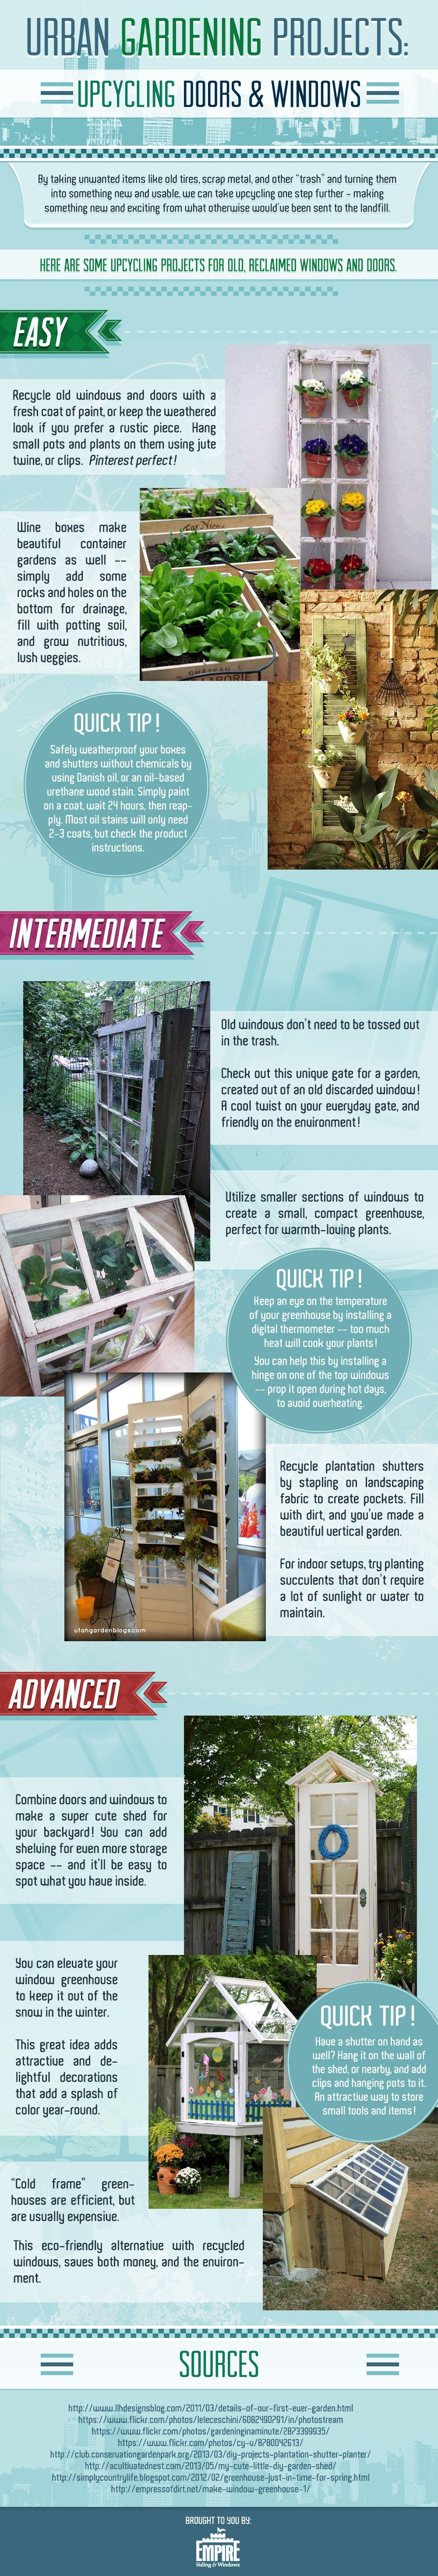 Upcycling Old Windows & Doors: Wintertime Gardening Projects #organicmakeupinfographic Upcycling Old Windows & Doors: Wintertime Gardening Projects